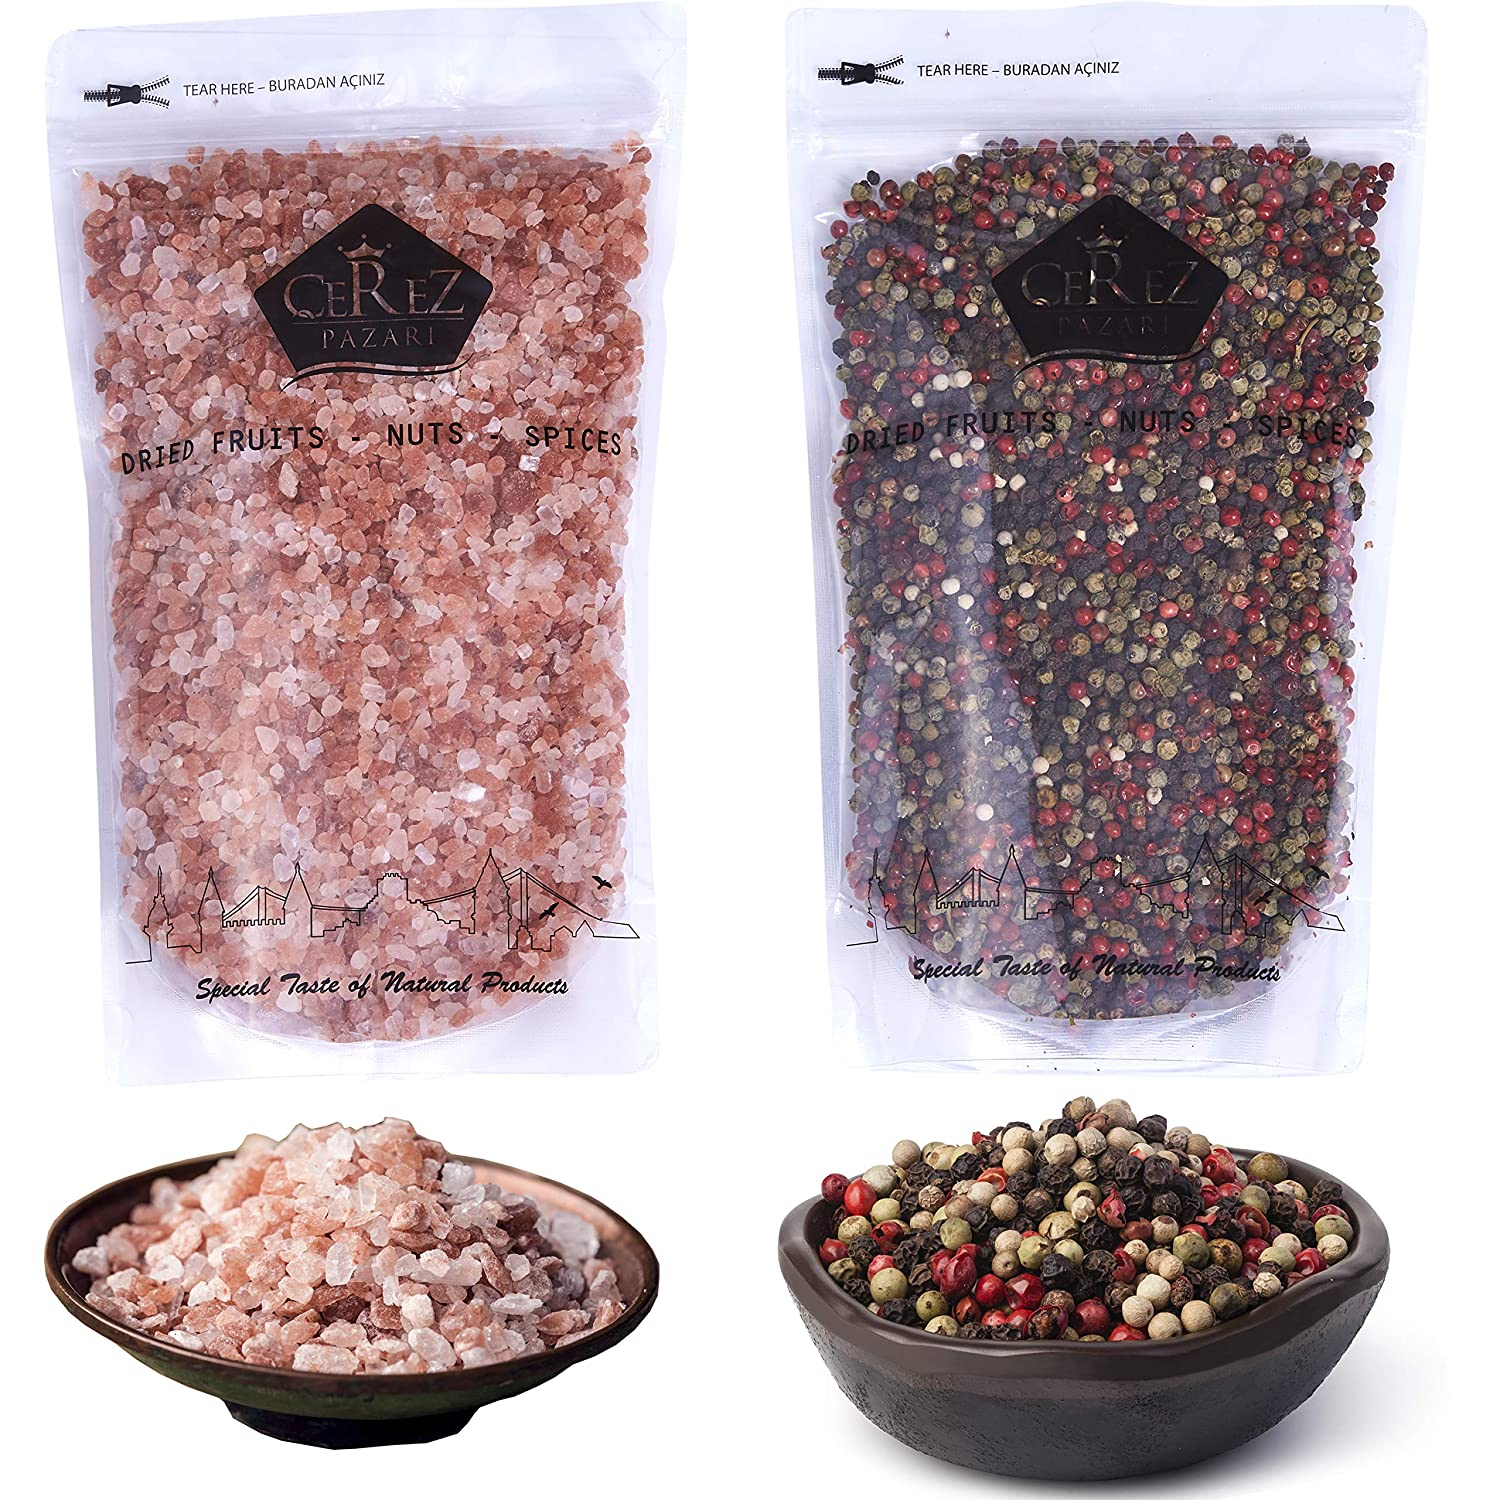 Cerez Pazari Rainbow Peppercorn Blend 12 oz and Himalayan Pink Salt (Coarse Grain) 2.2 lbs, Whole Black, Pink, Green, White Color Pepper For Grinders Refills